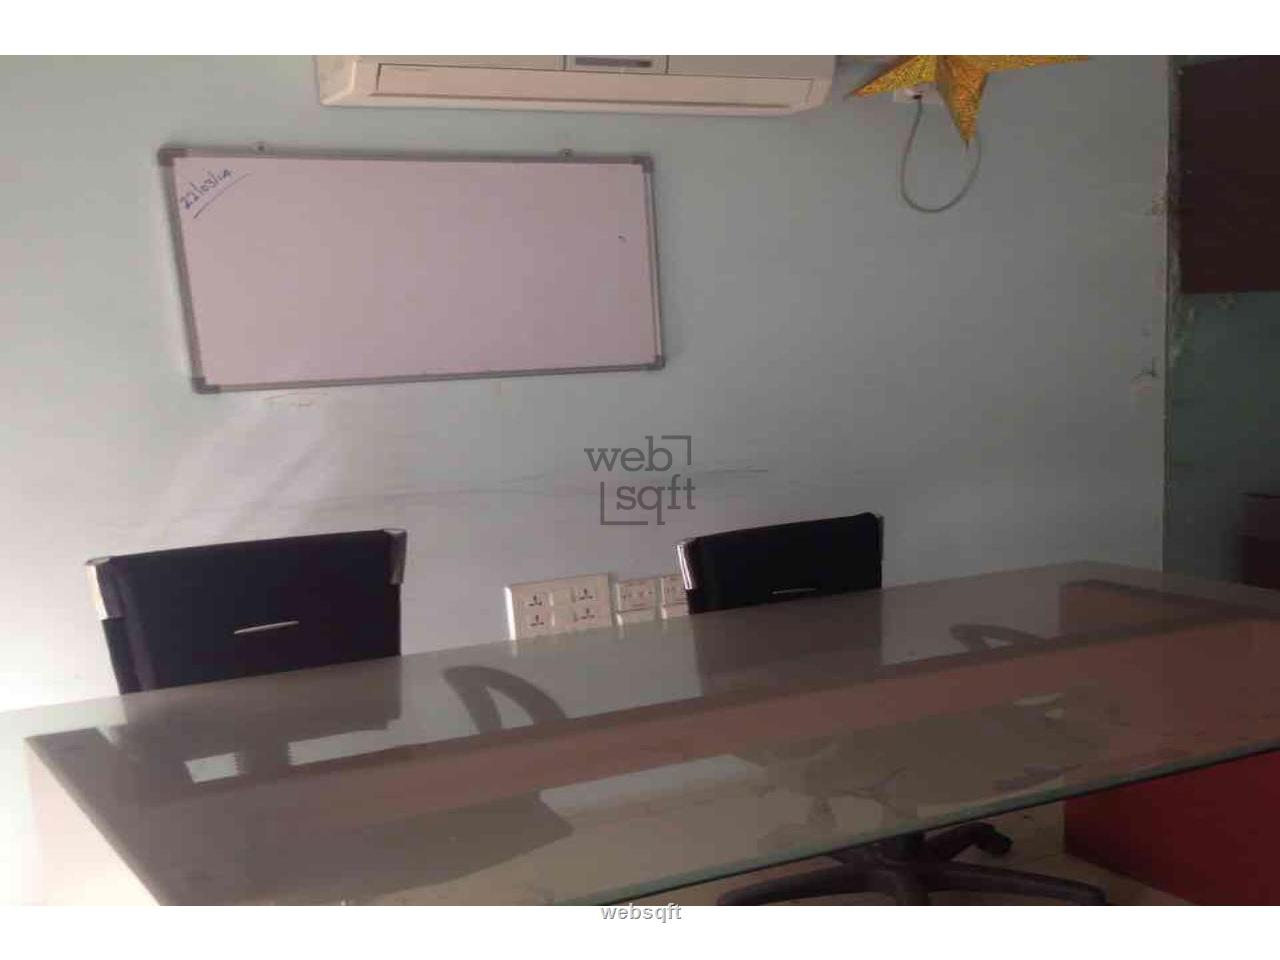 Websqft - Commercial Office Space - Property for Sale - in 1250Sq-ft/RP Road at Rs 5800000